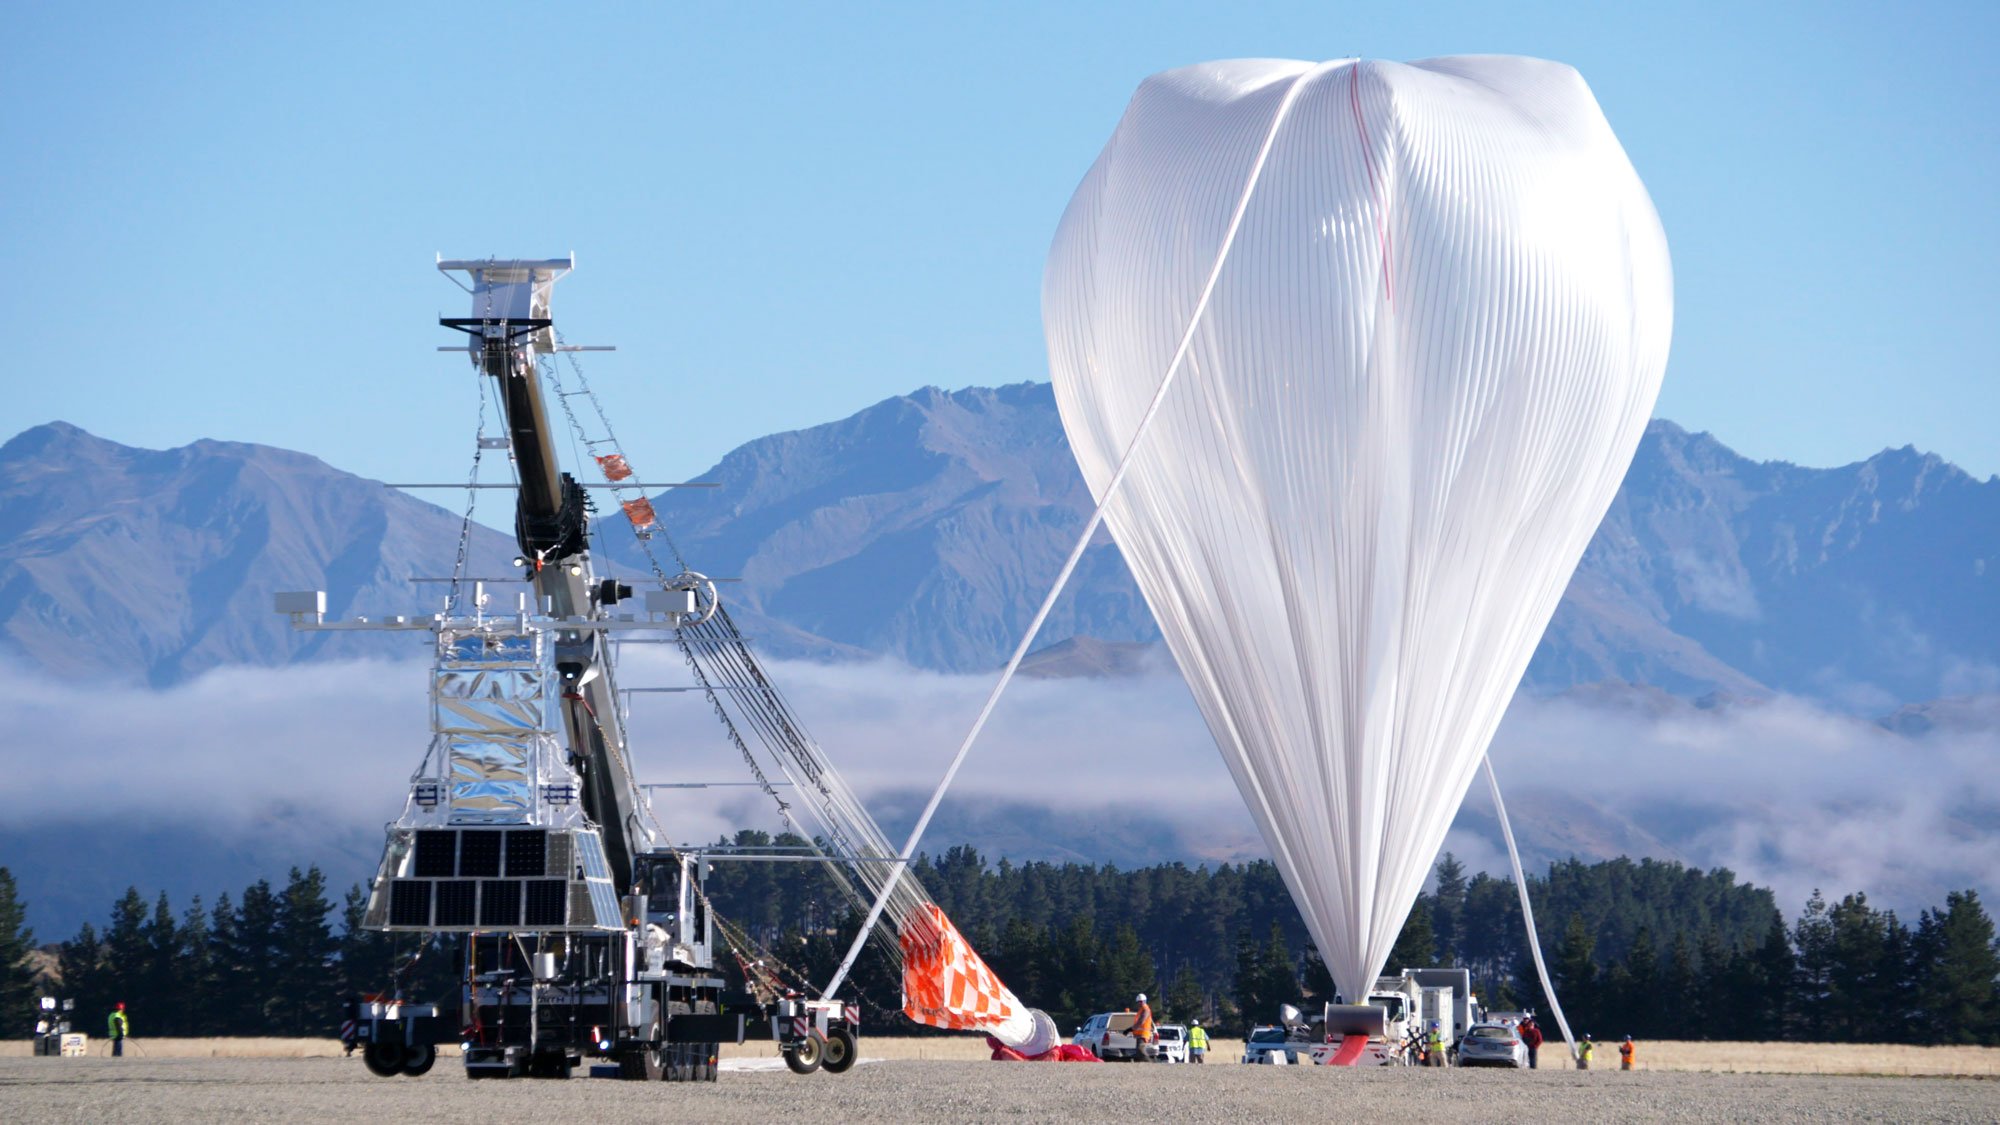 "<p>Track the balloon's flight path <a href=""https://www.csbf.nasa.gov/newzealand/wanaka.htm"">here.</a></p>"